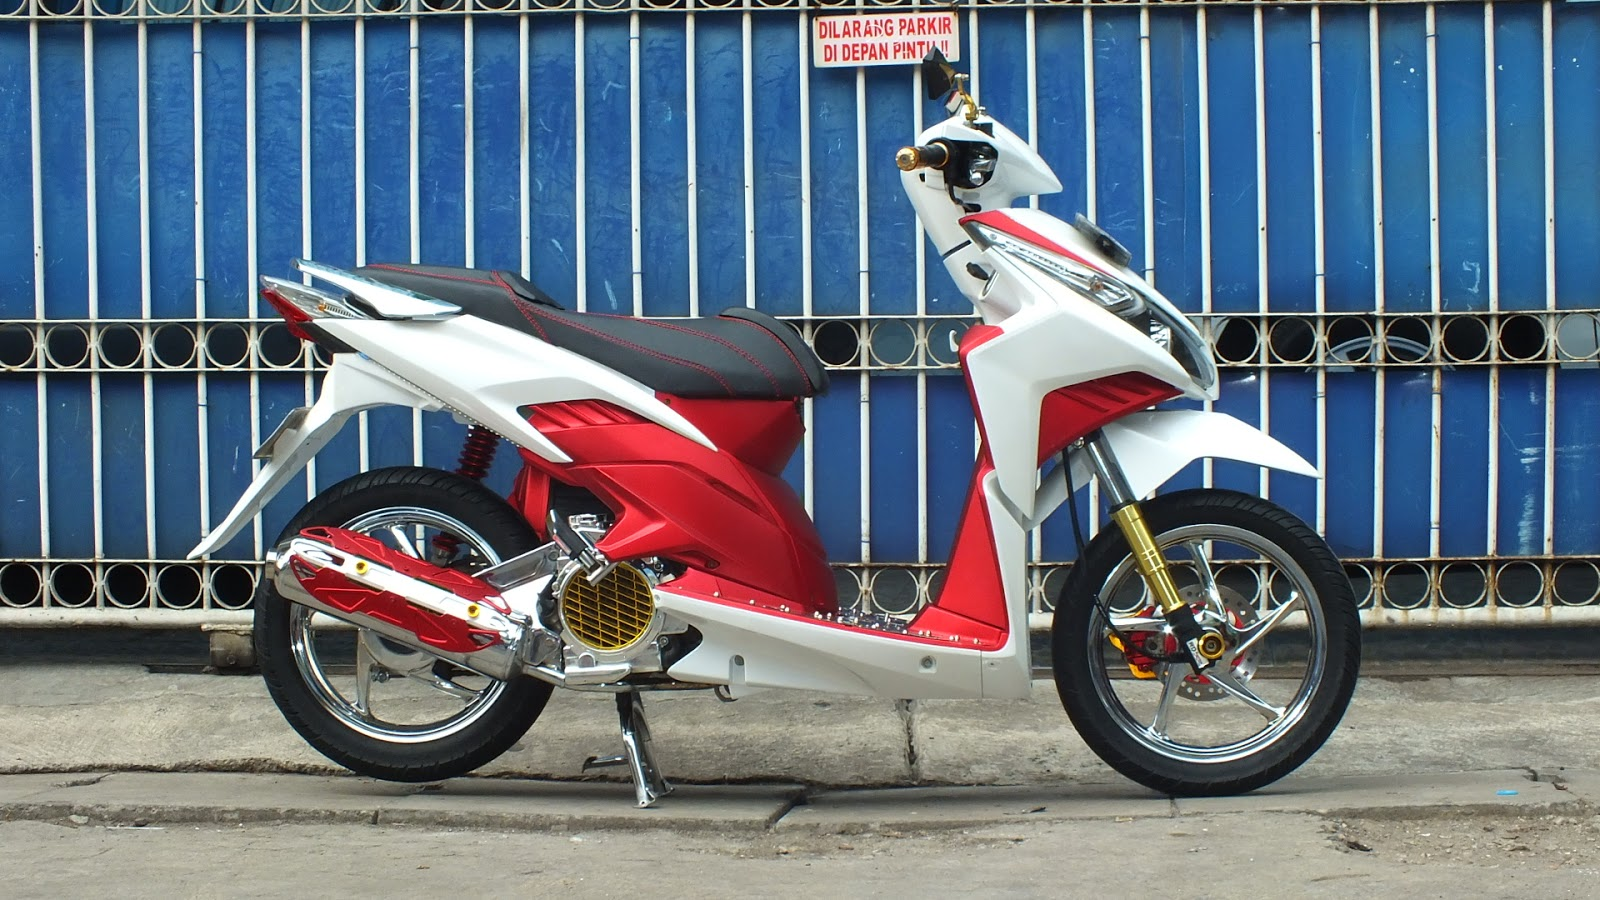 Modifikasi Vario Techno 110 Ring 14 Galeri Motor Vario